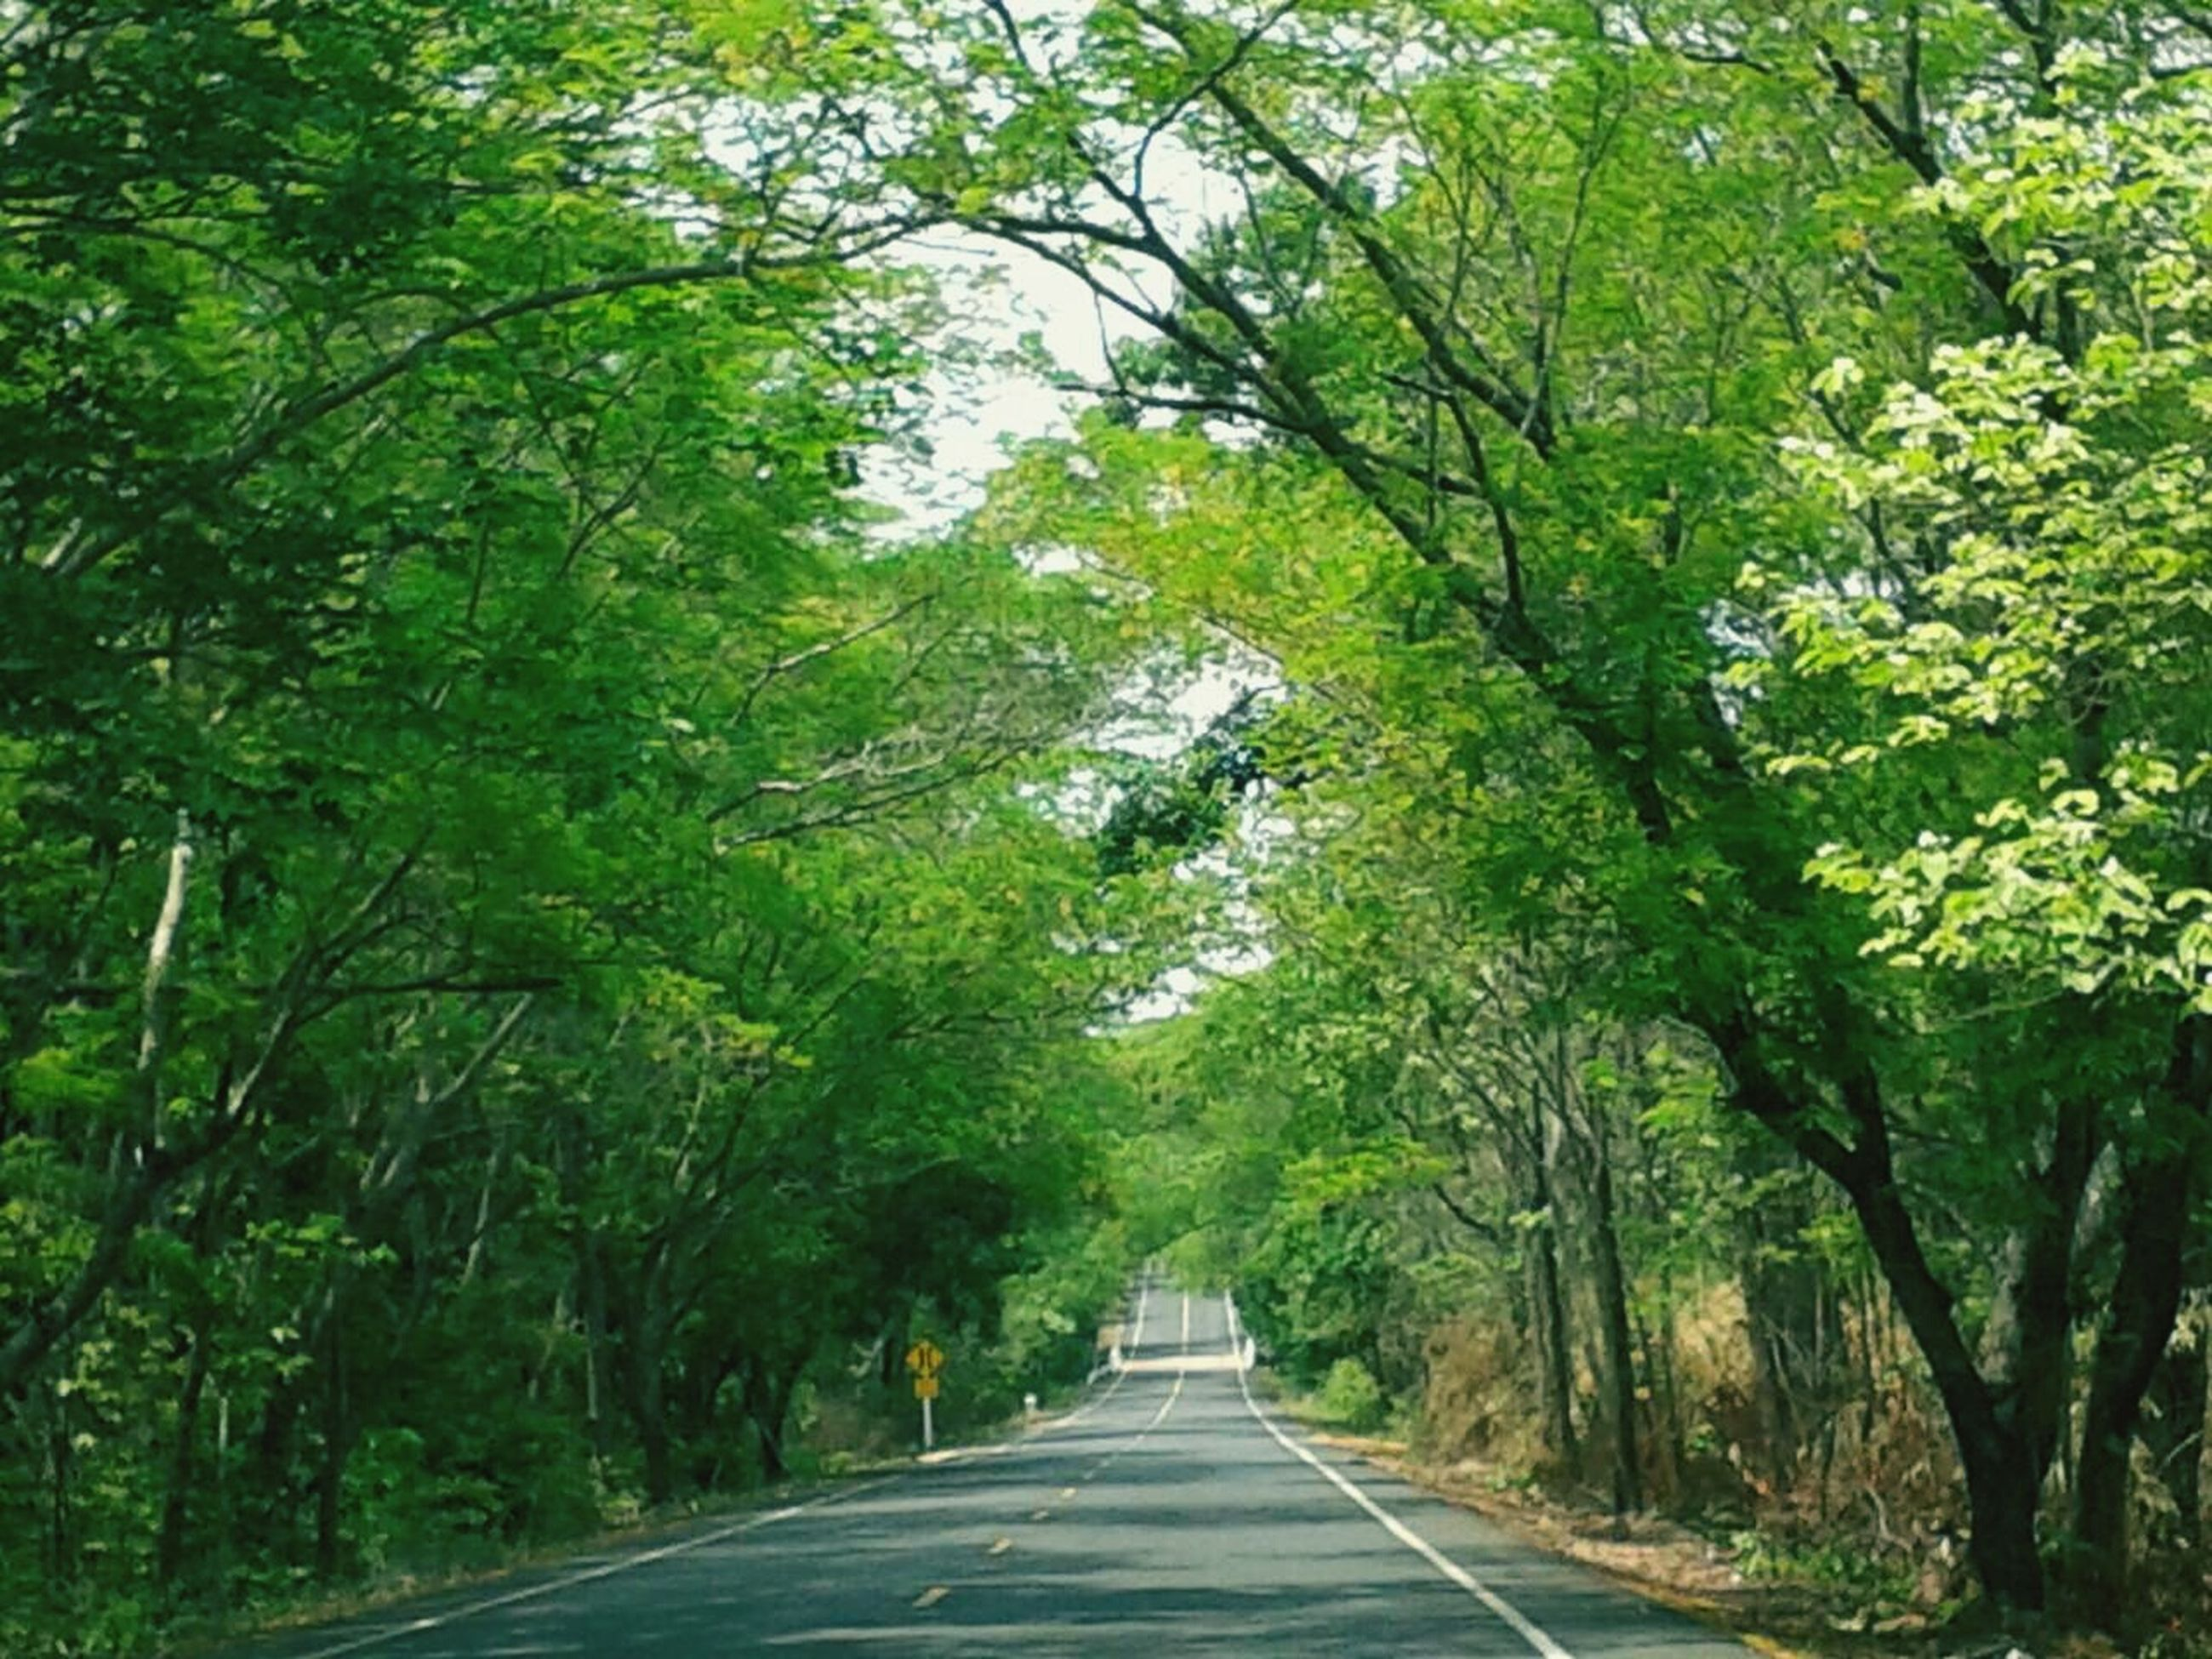 the way forward, tree, diminishing perspective, transportation, vanishing point, road, forest, tranquility, growth, empty road, nature, green color, empty, long, road marking, tranquil scene, country road, treelined, beauty in nature, no people